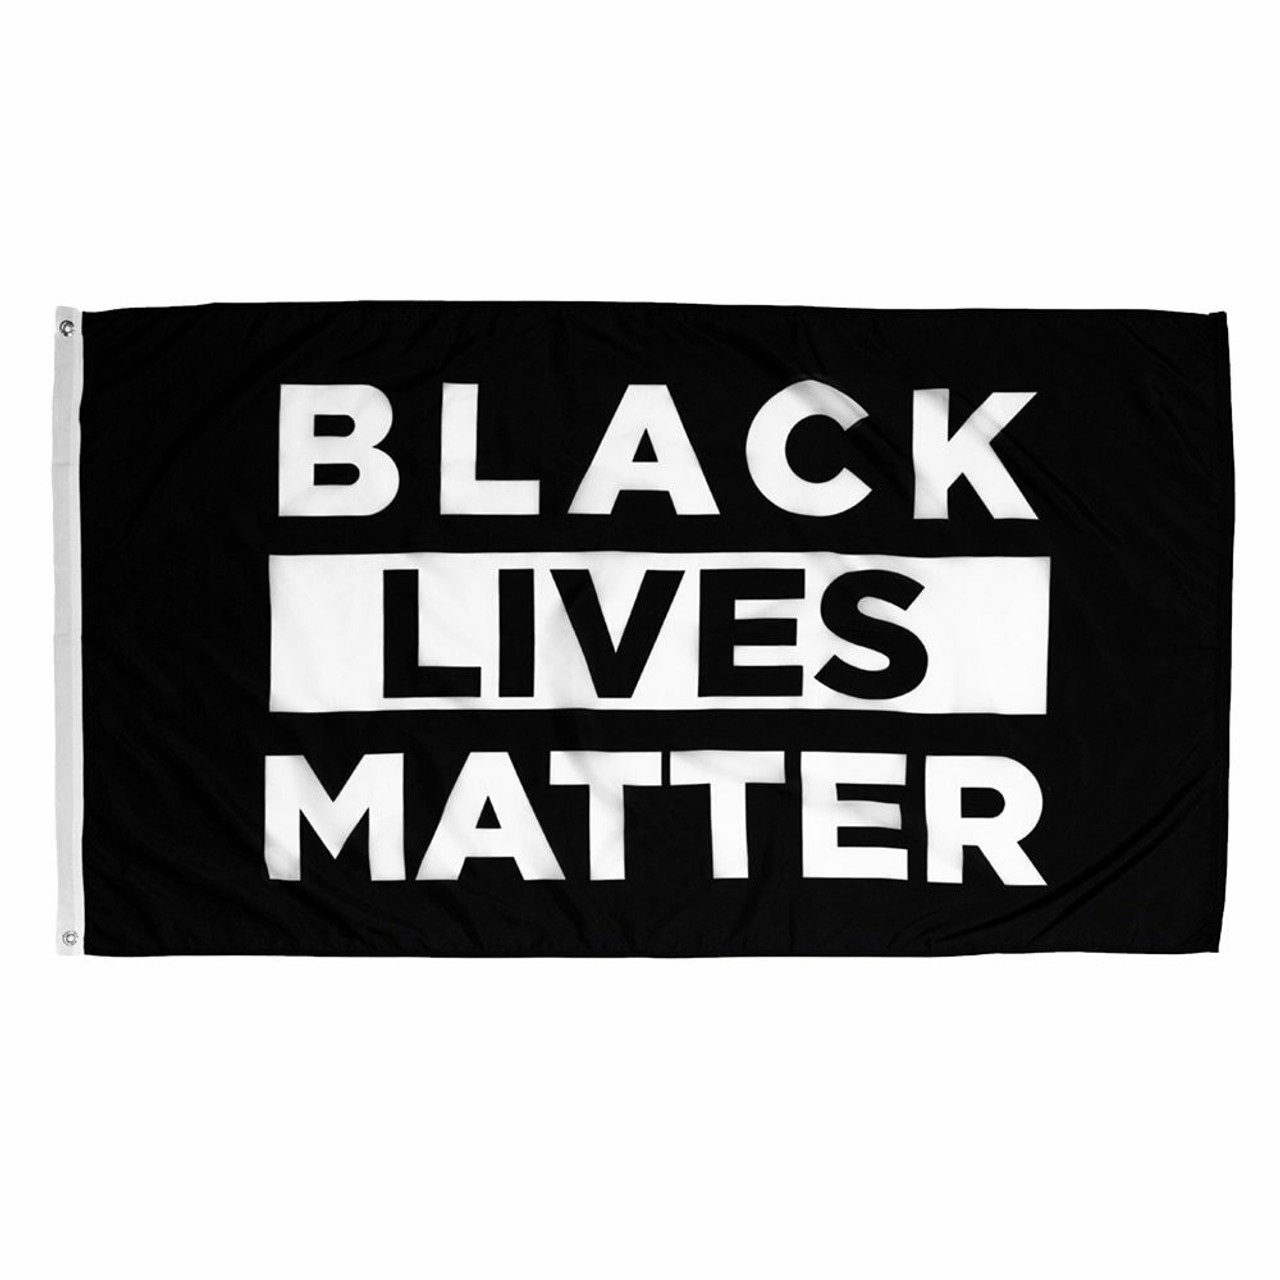 "The nylon Black Lives Matter flag comprises of a black background with a white rectangle in its center. Text in white and black through the flag (the white text is in the black part and the black text is in the white rectangle) reads ""Black Lives Matter"". The flag has a canvas header and brass grommets on the mounting side."